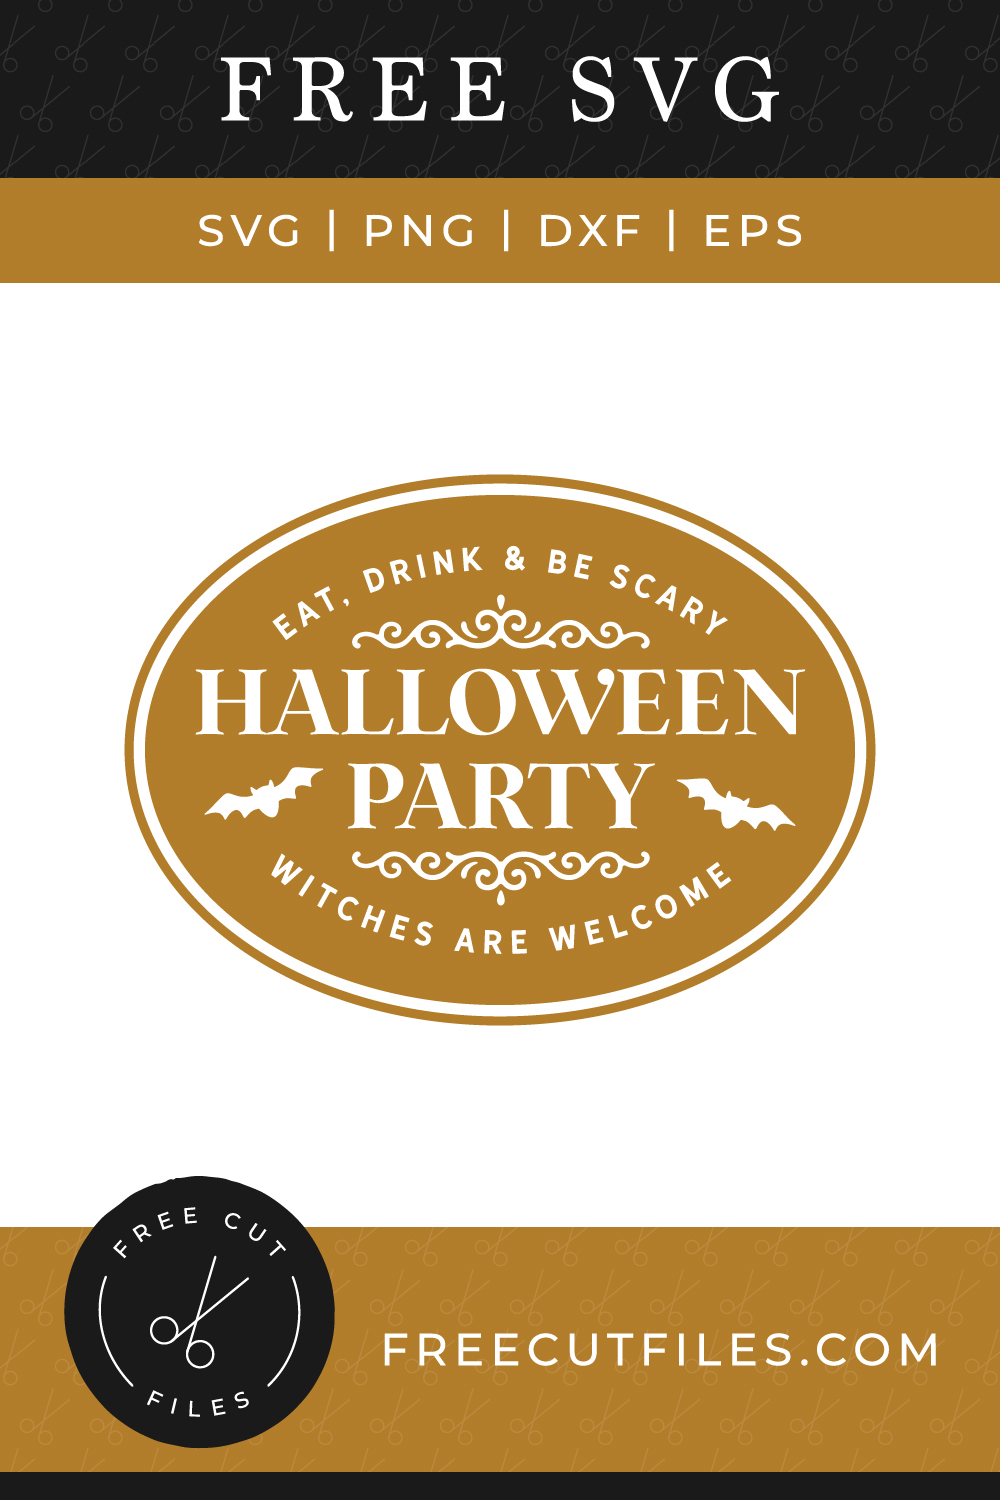 Halloween Party - witches are welcome